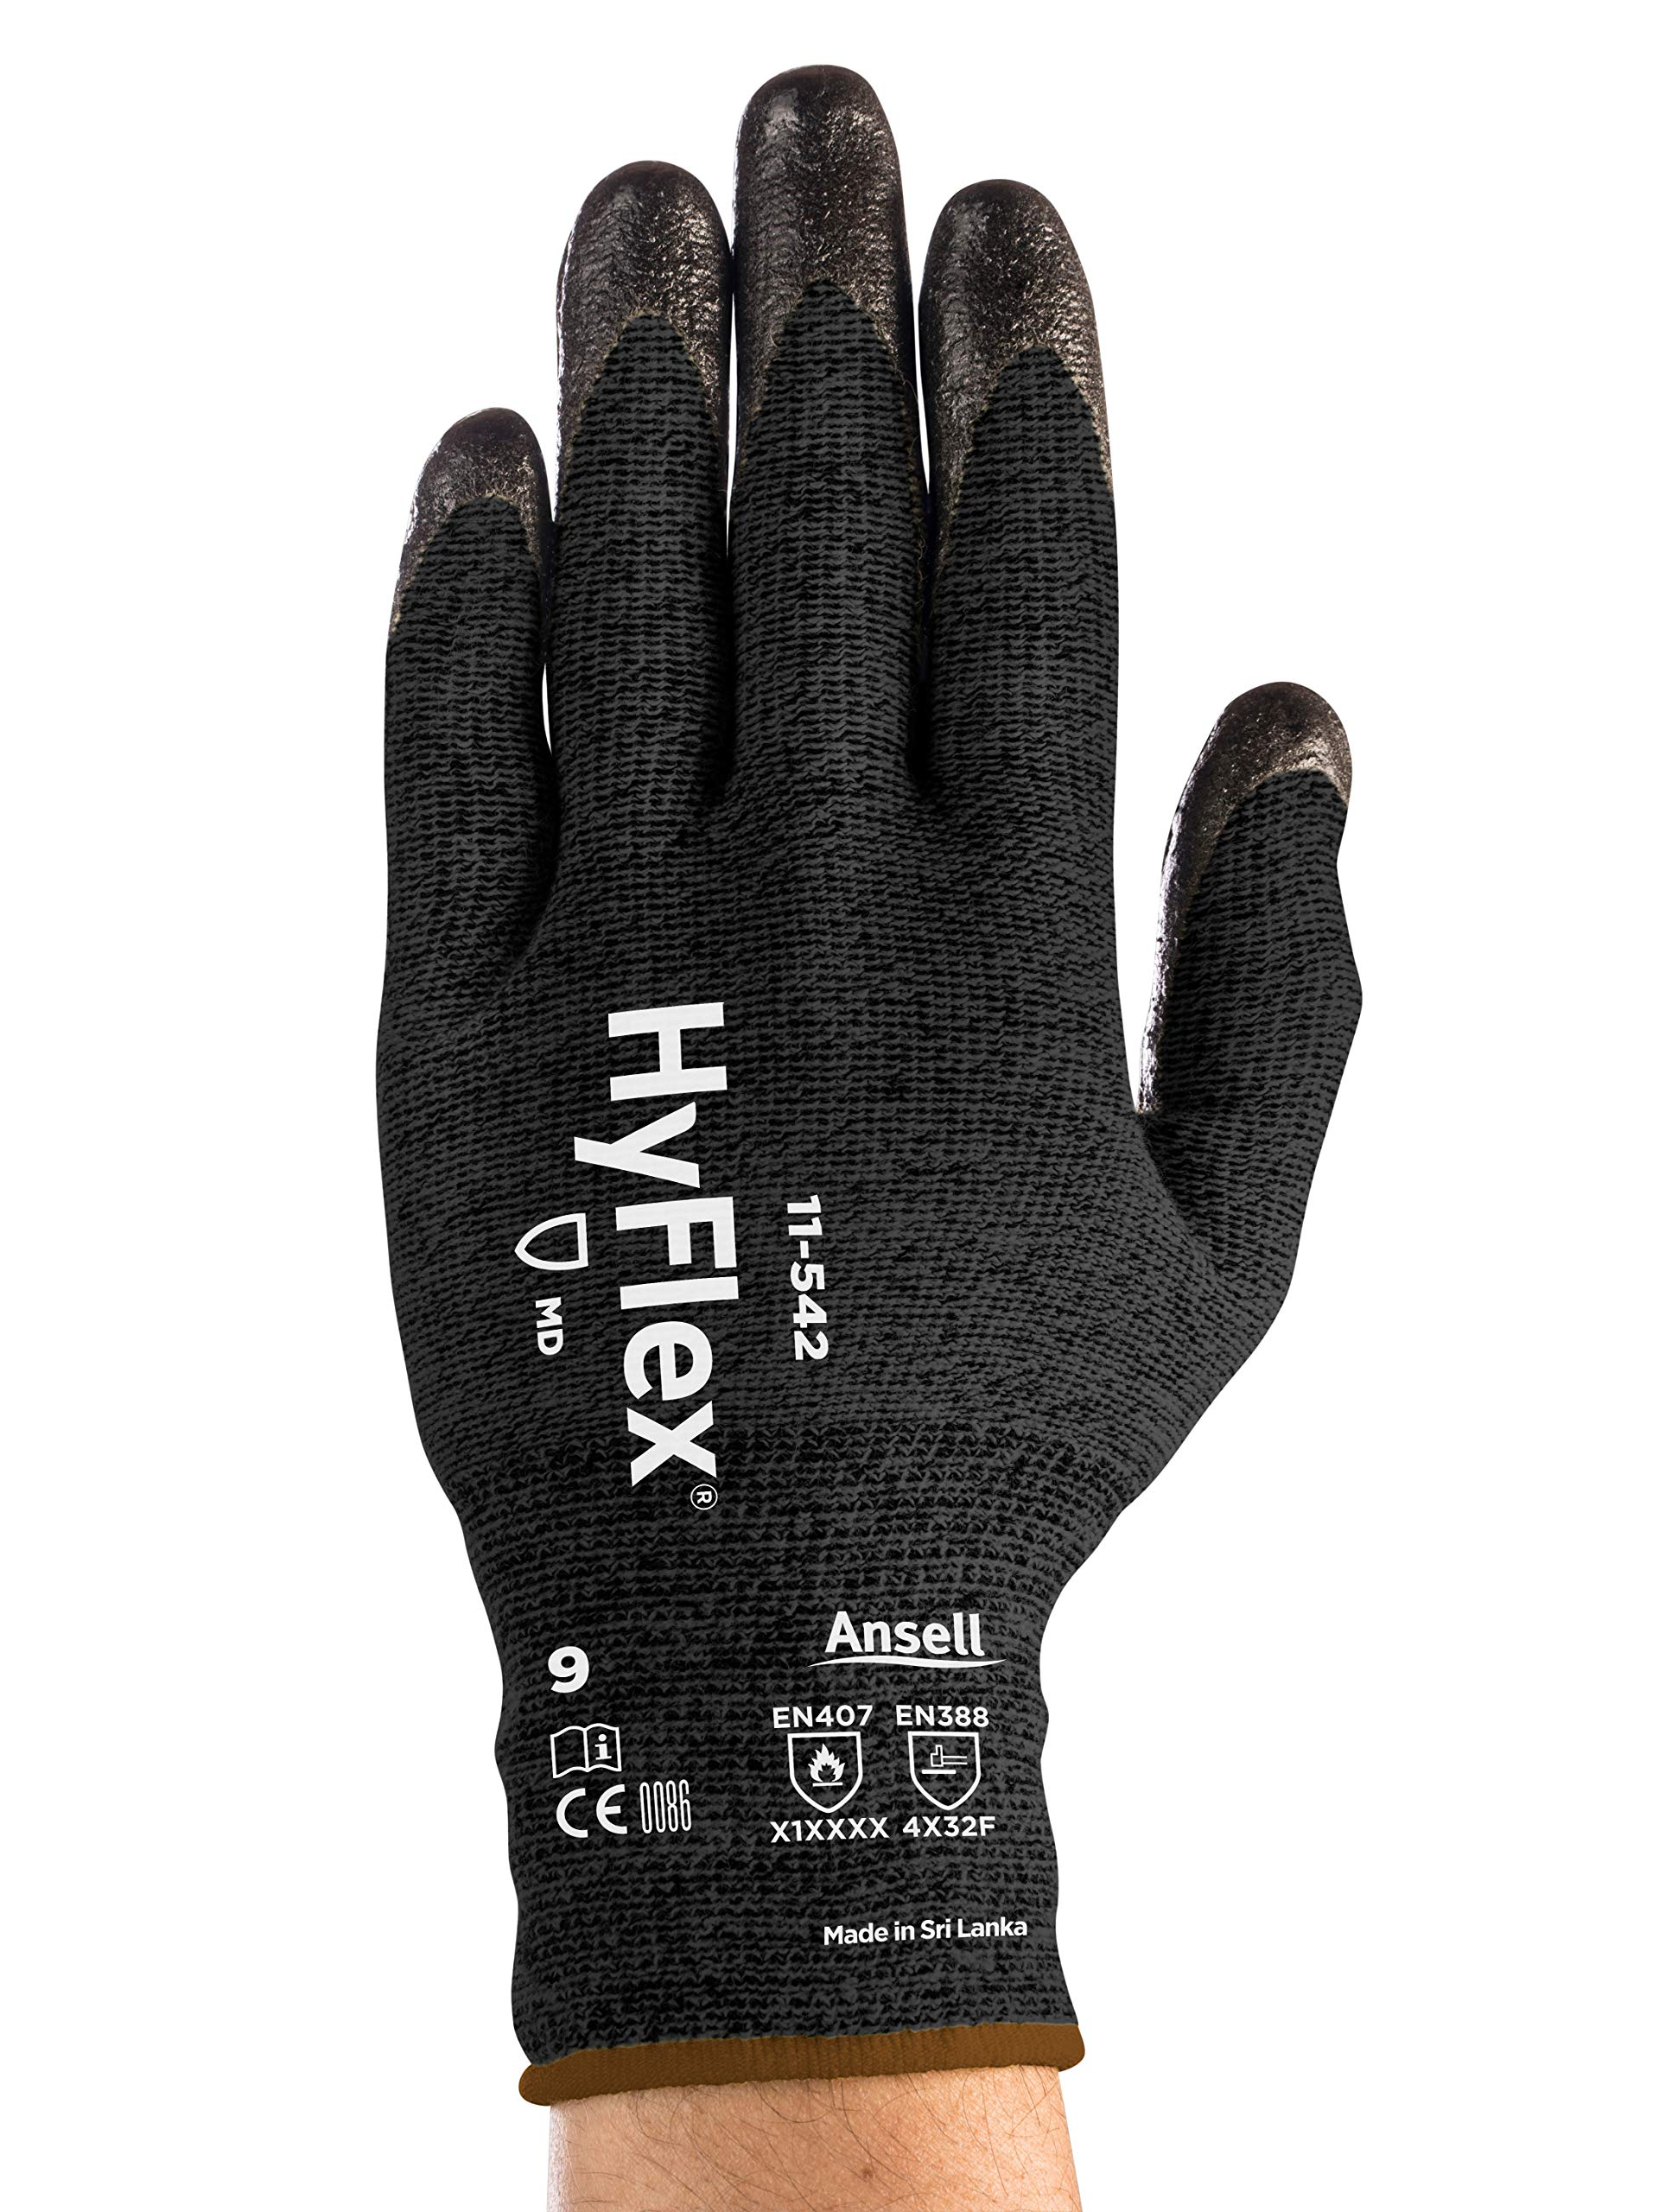 HyFlex 11-542 Cut Protection Gloves - Light, High Cut Protection, Grip, Size X Large (Pack of 12) by Ansell (Image #6)